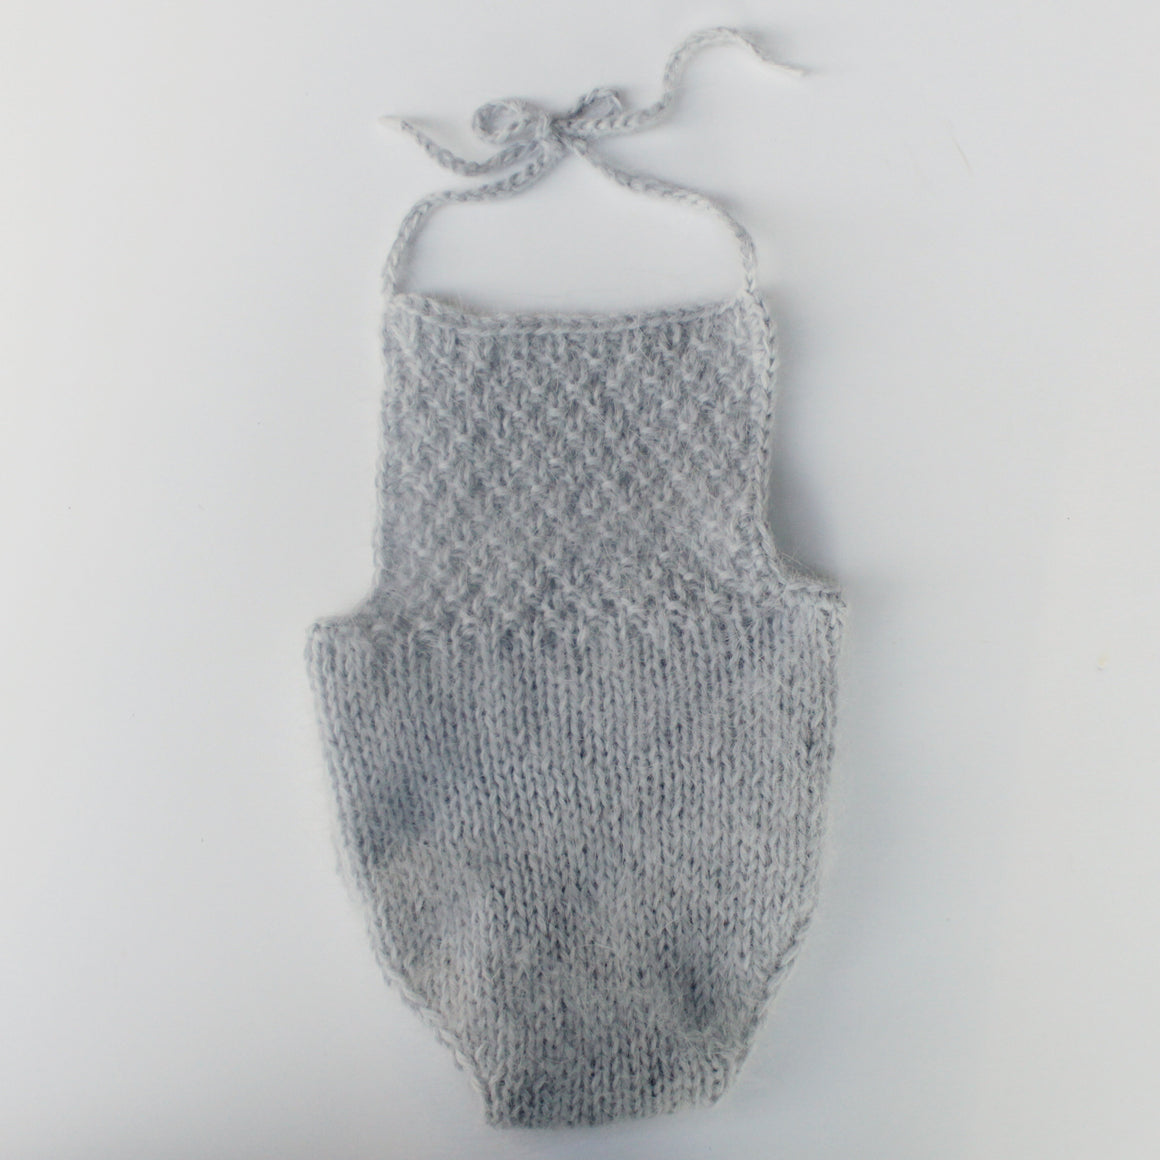 Pearl Grey Angora Romper - Newborn - Ready to Ship - Knit Photography Props by Double the Stitches